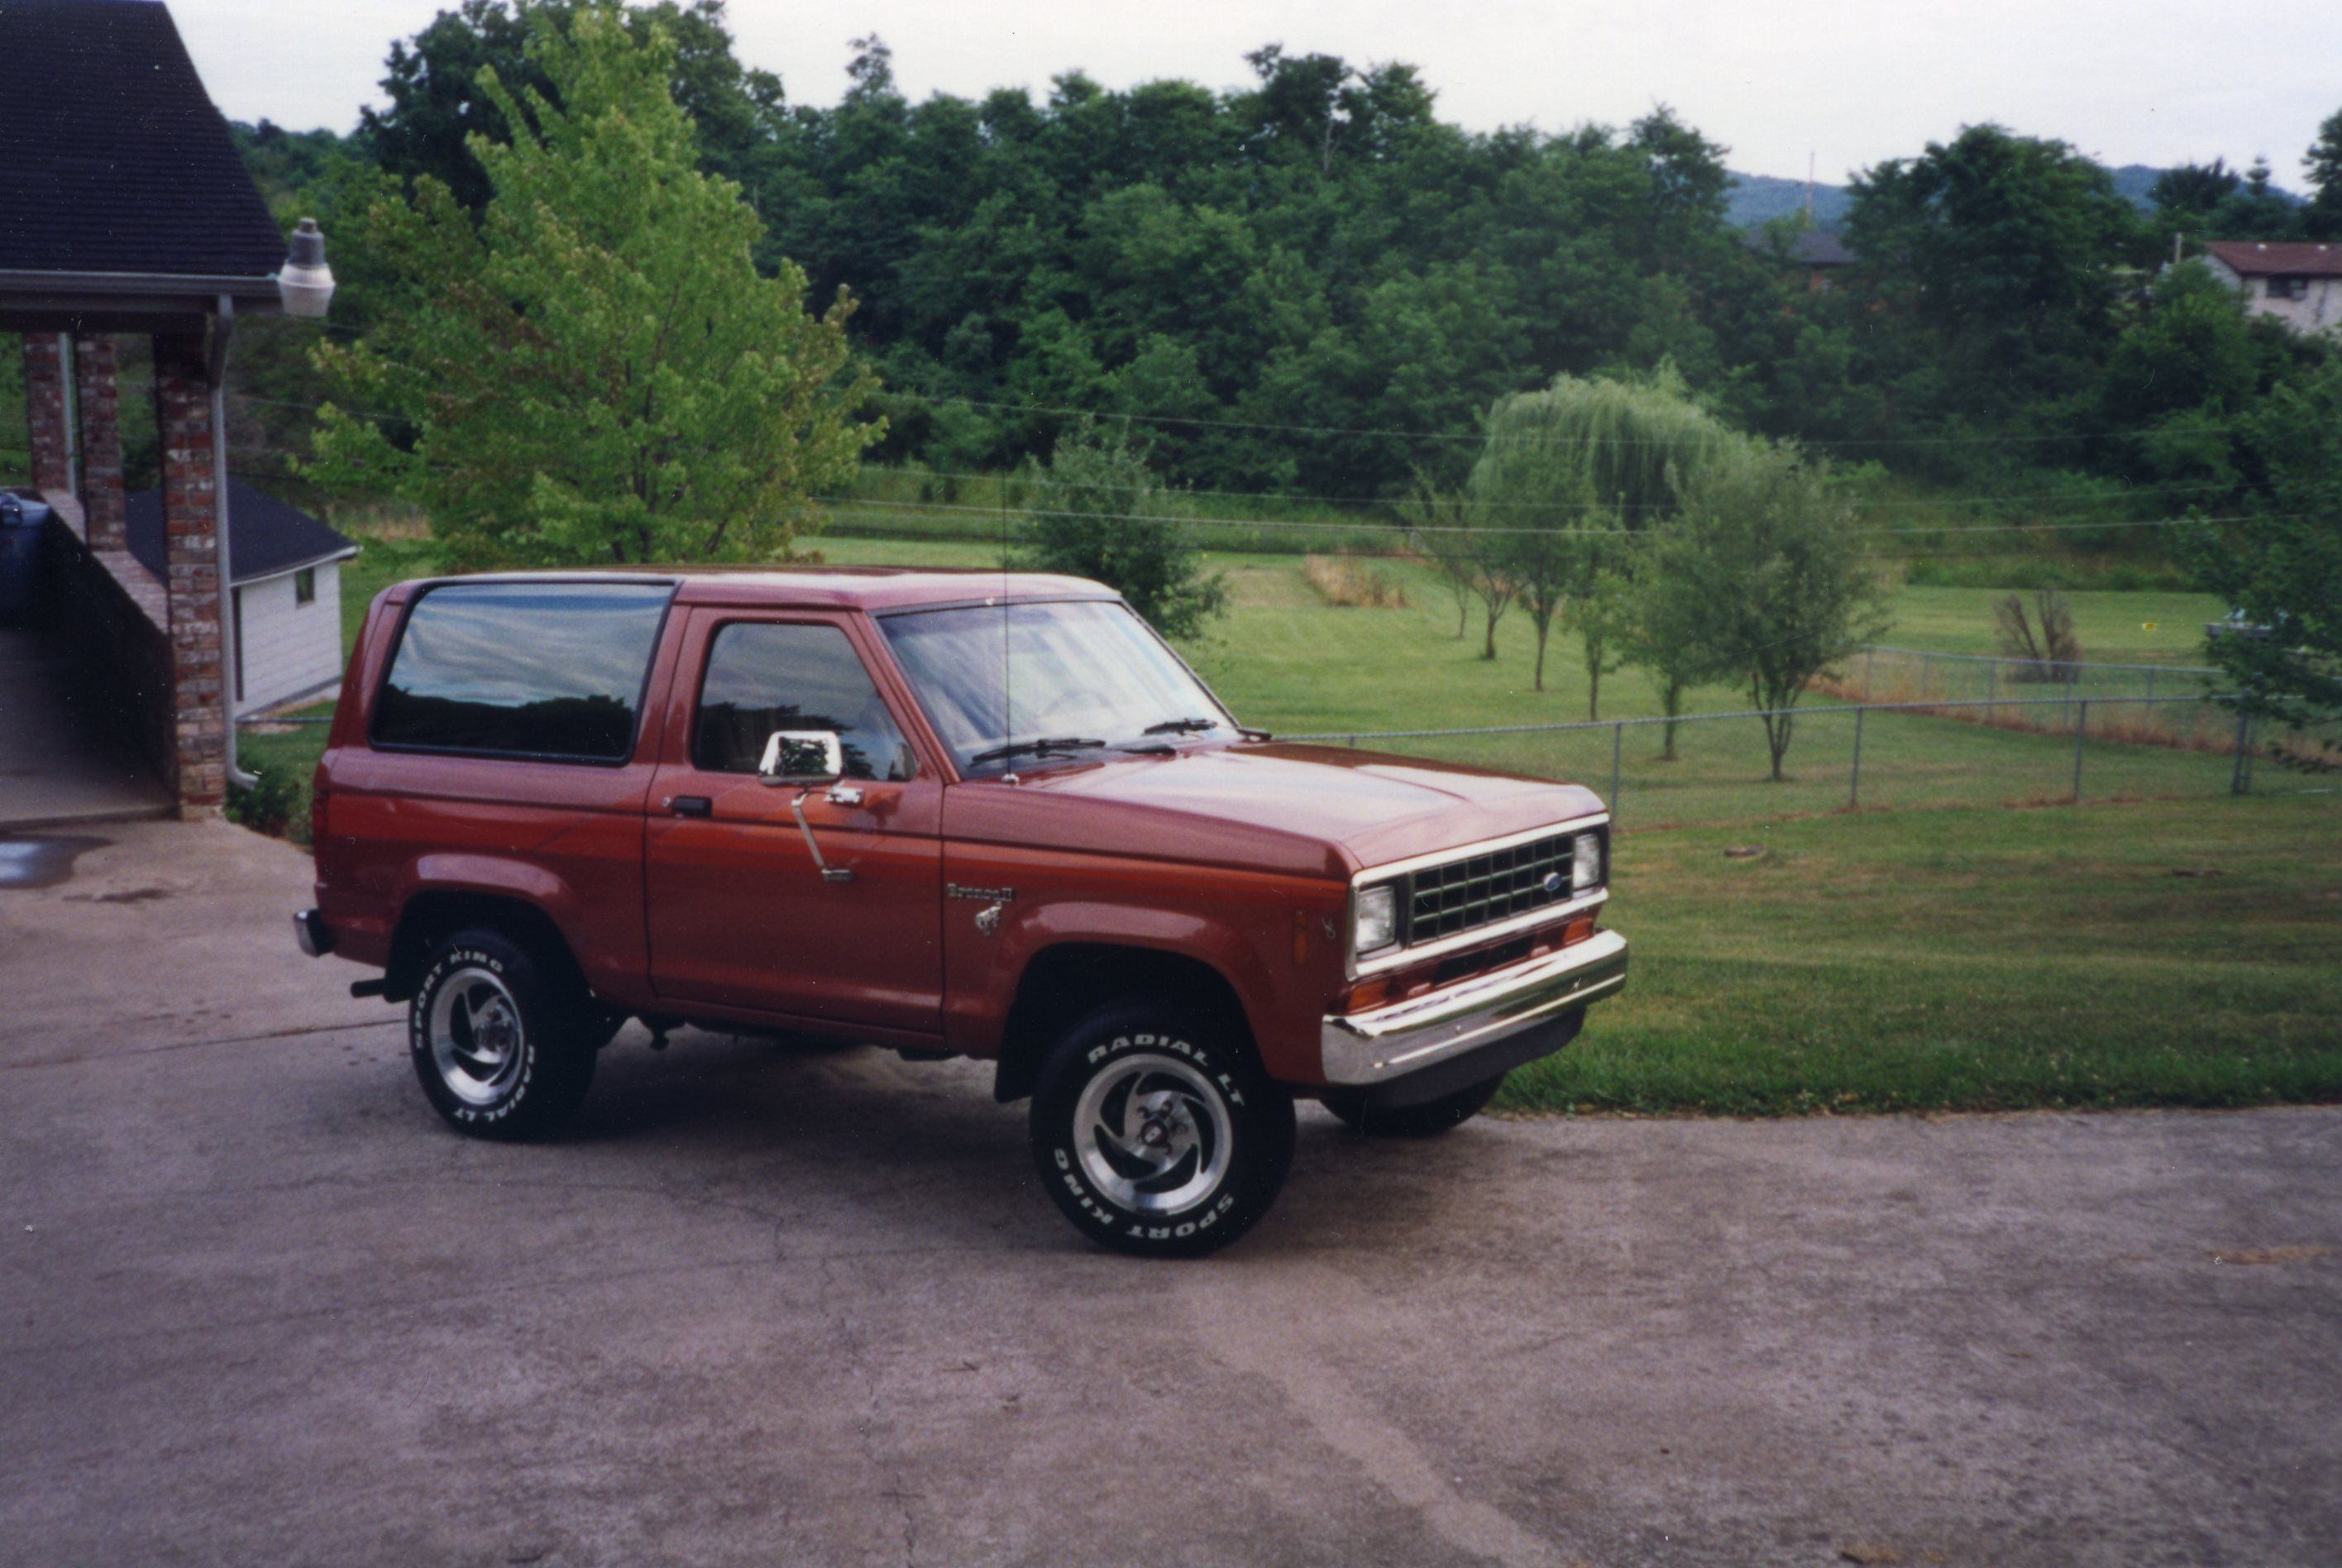 1984 Ford Bronco Ii Red With Orange Stripes My First Car Memories 1980 Mirror